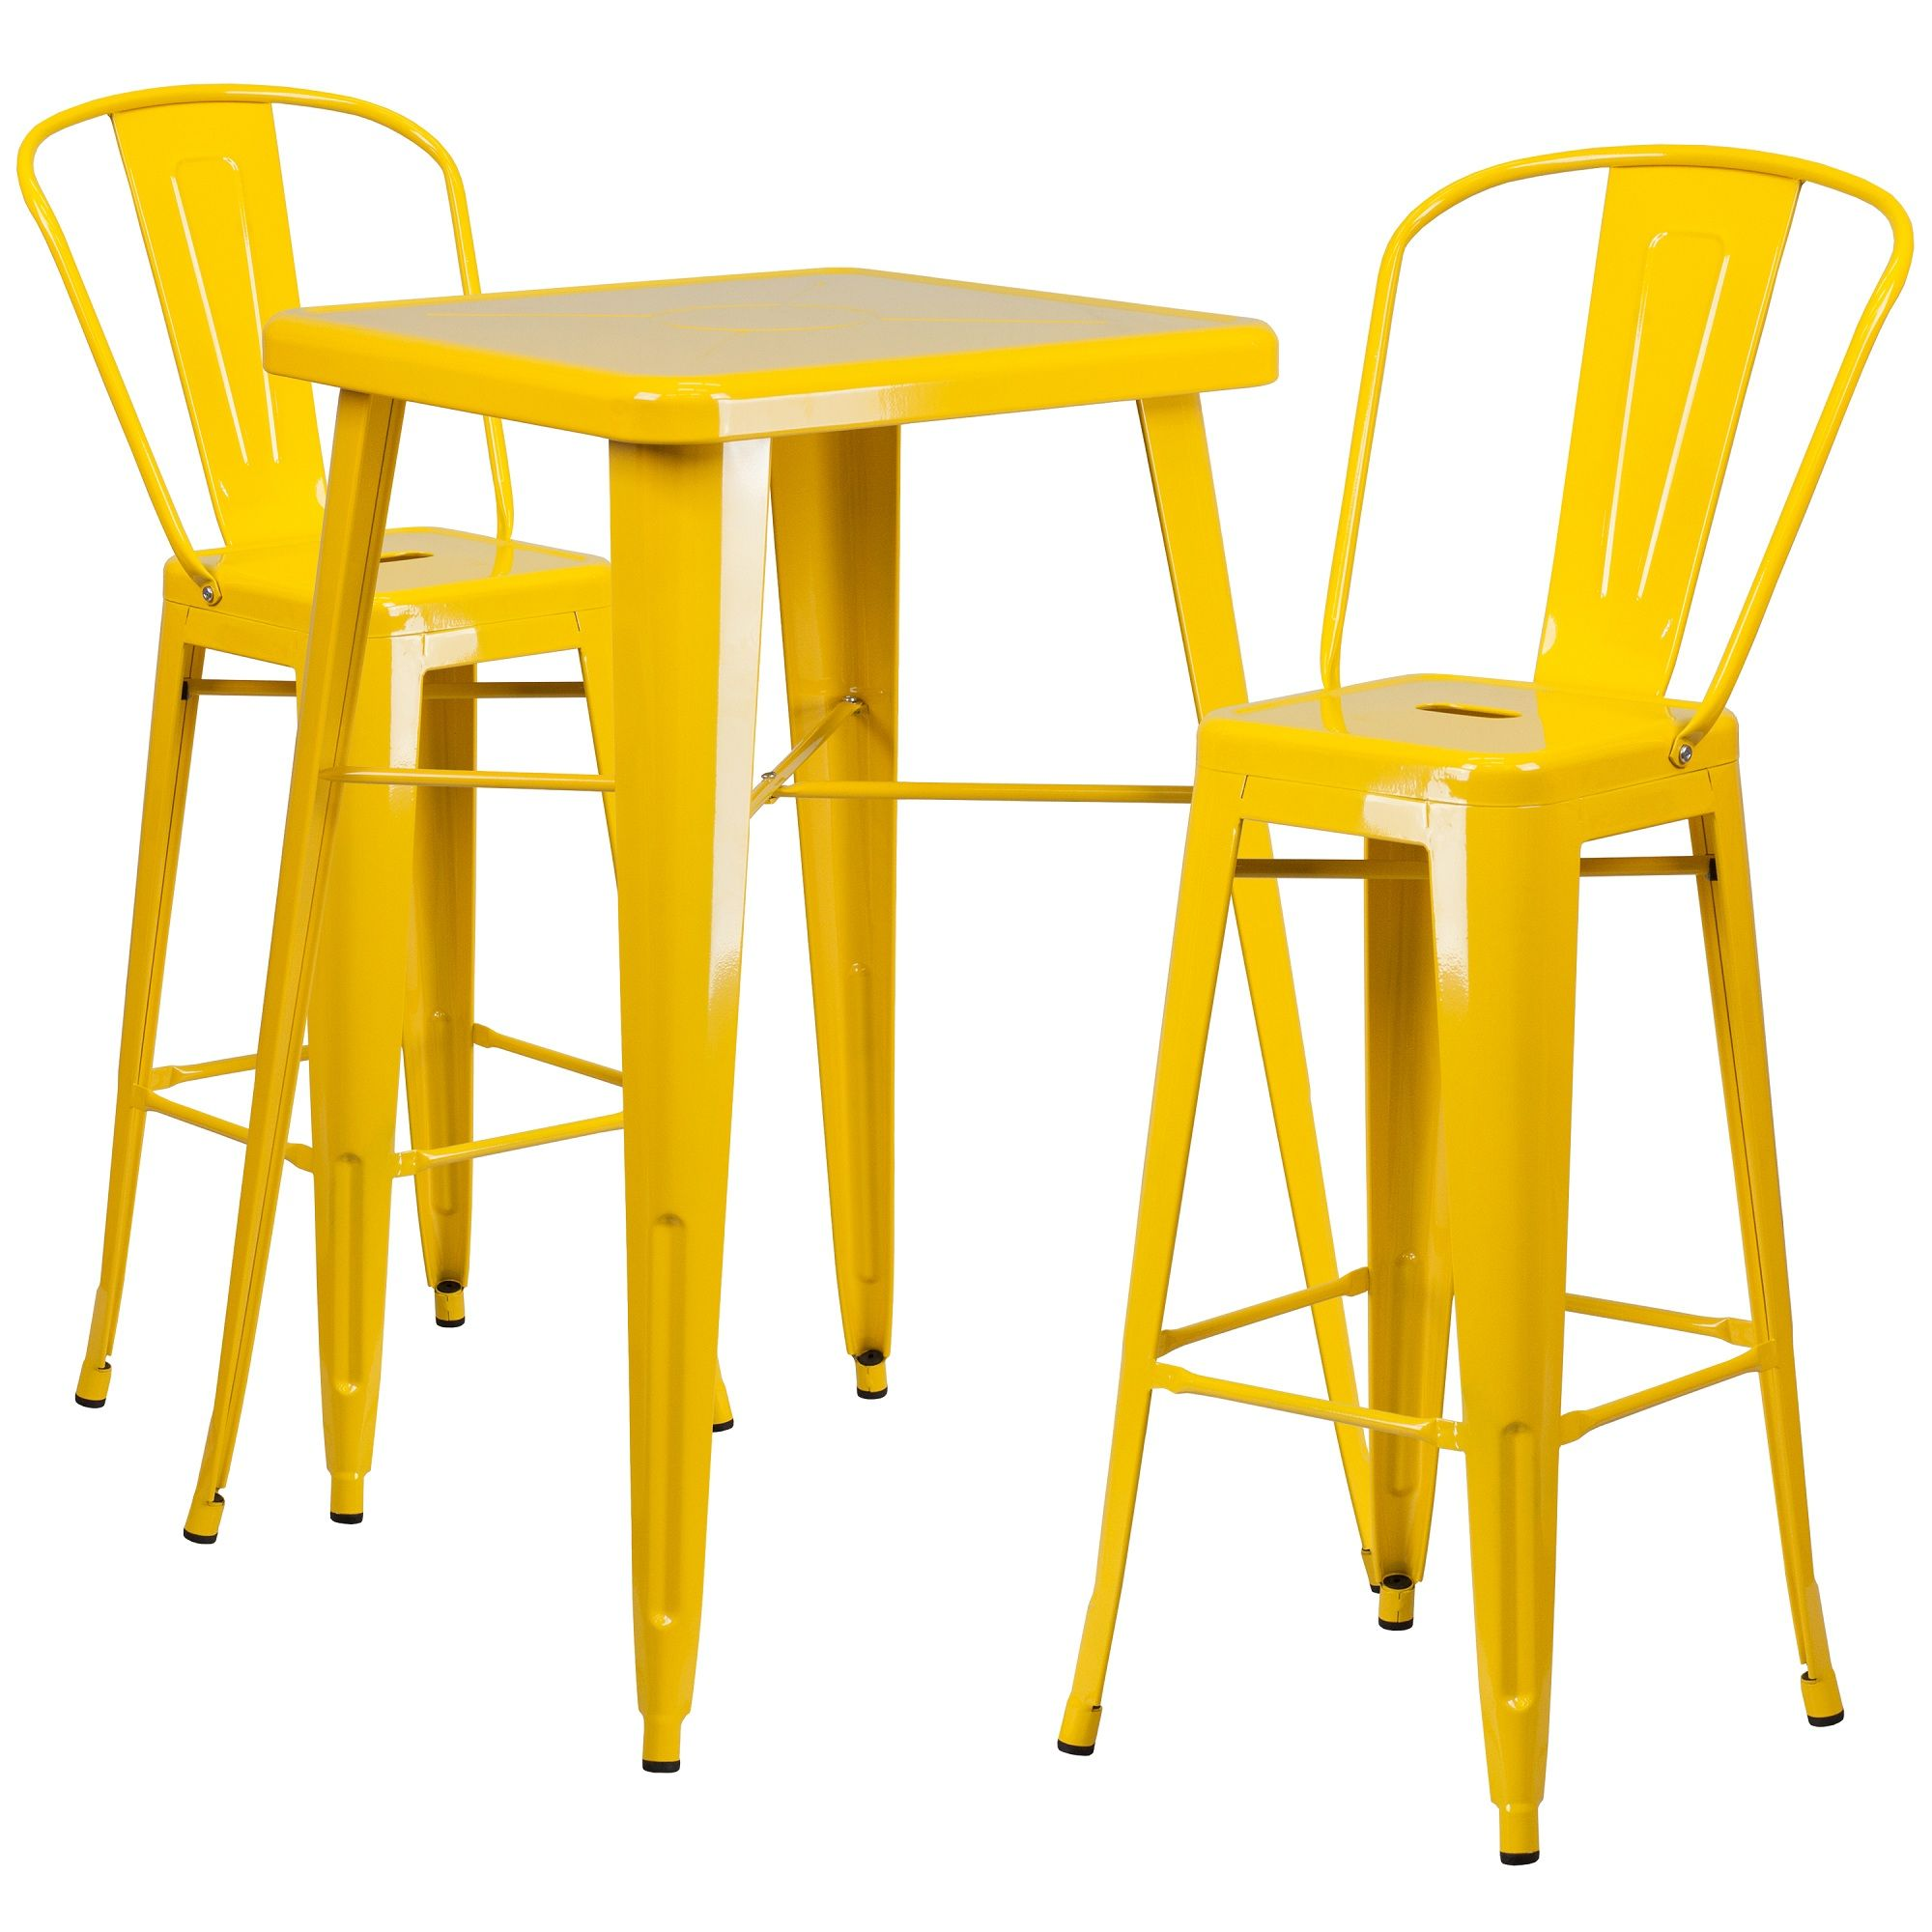 Set Of 3 Yellow Metal Bistro Style Chairs And Bar Height Table